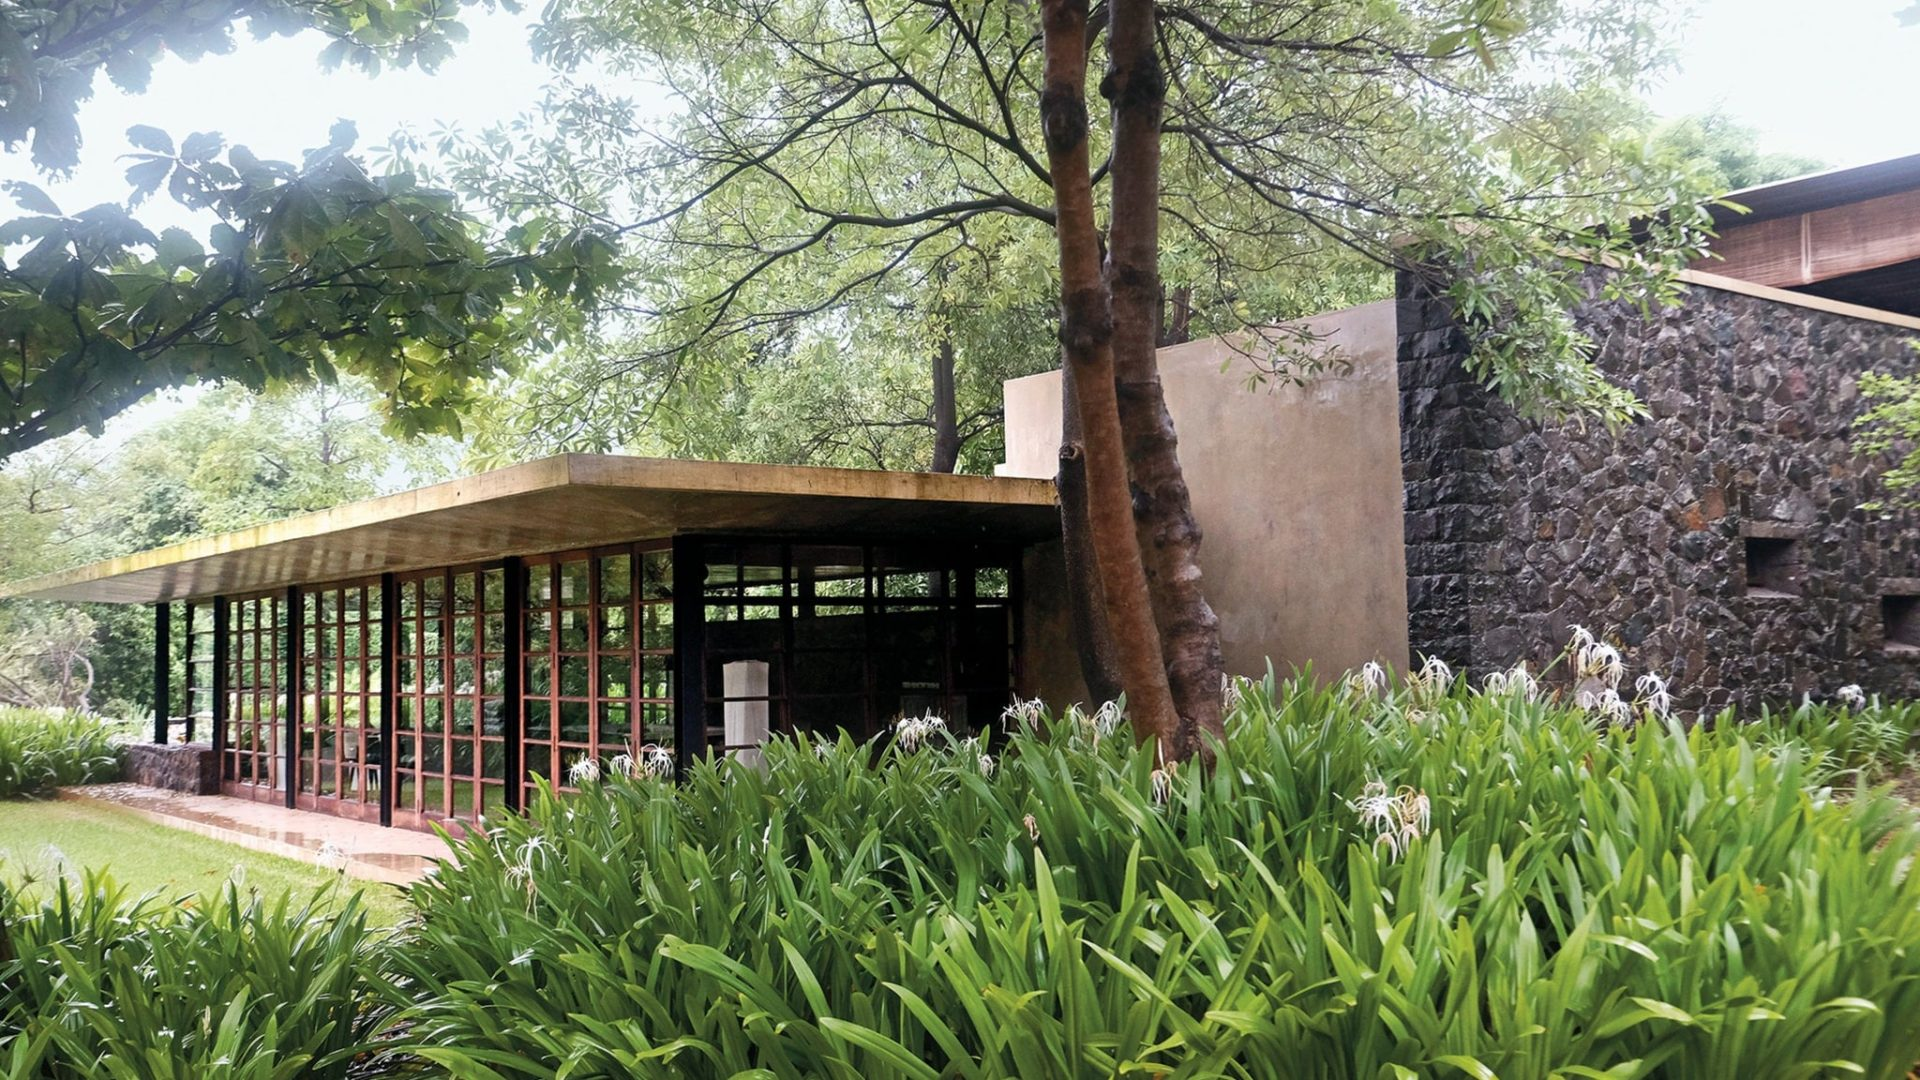 The exterior of Utsav House betrays its airy interiors